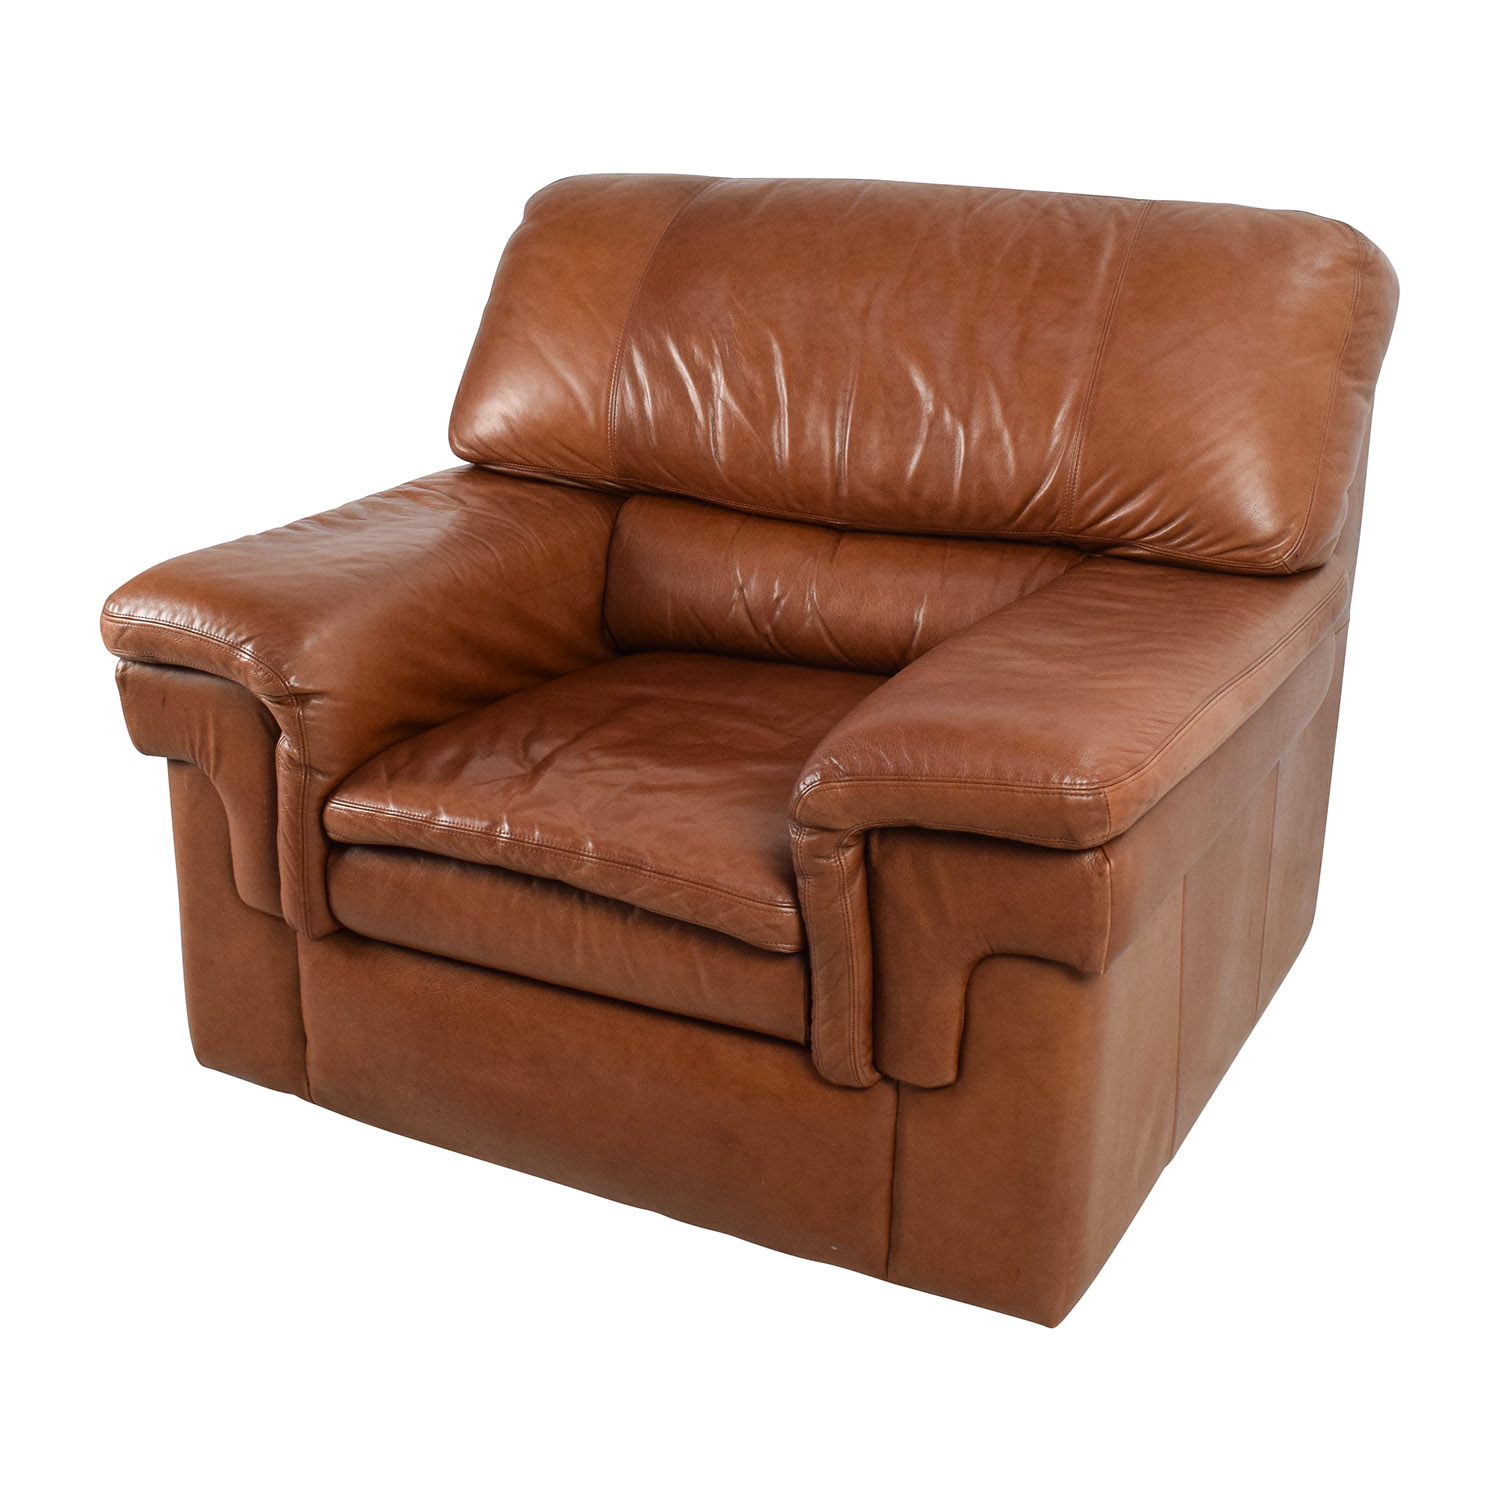 70% OFF - Classic Cherry Brown Leather Armchair / Chairs